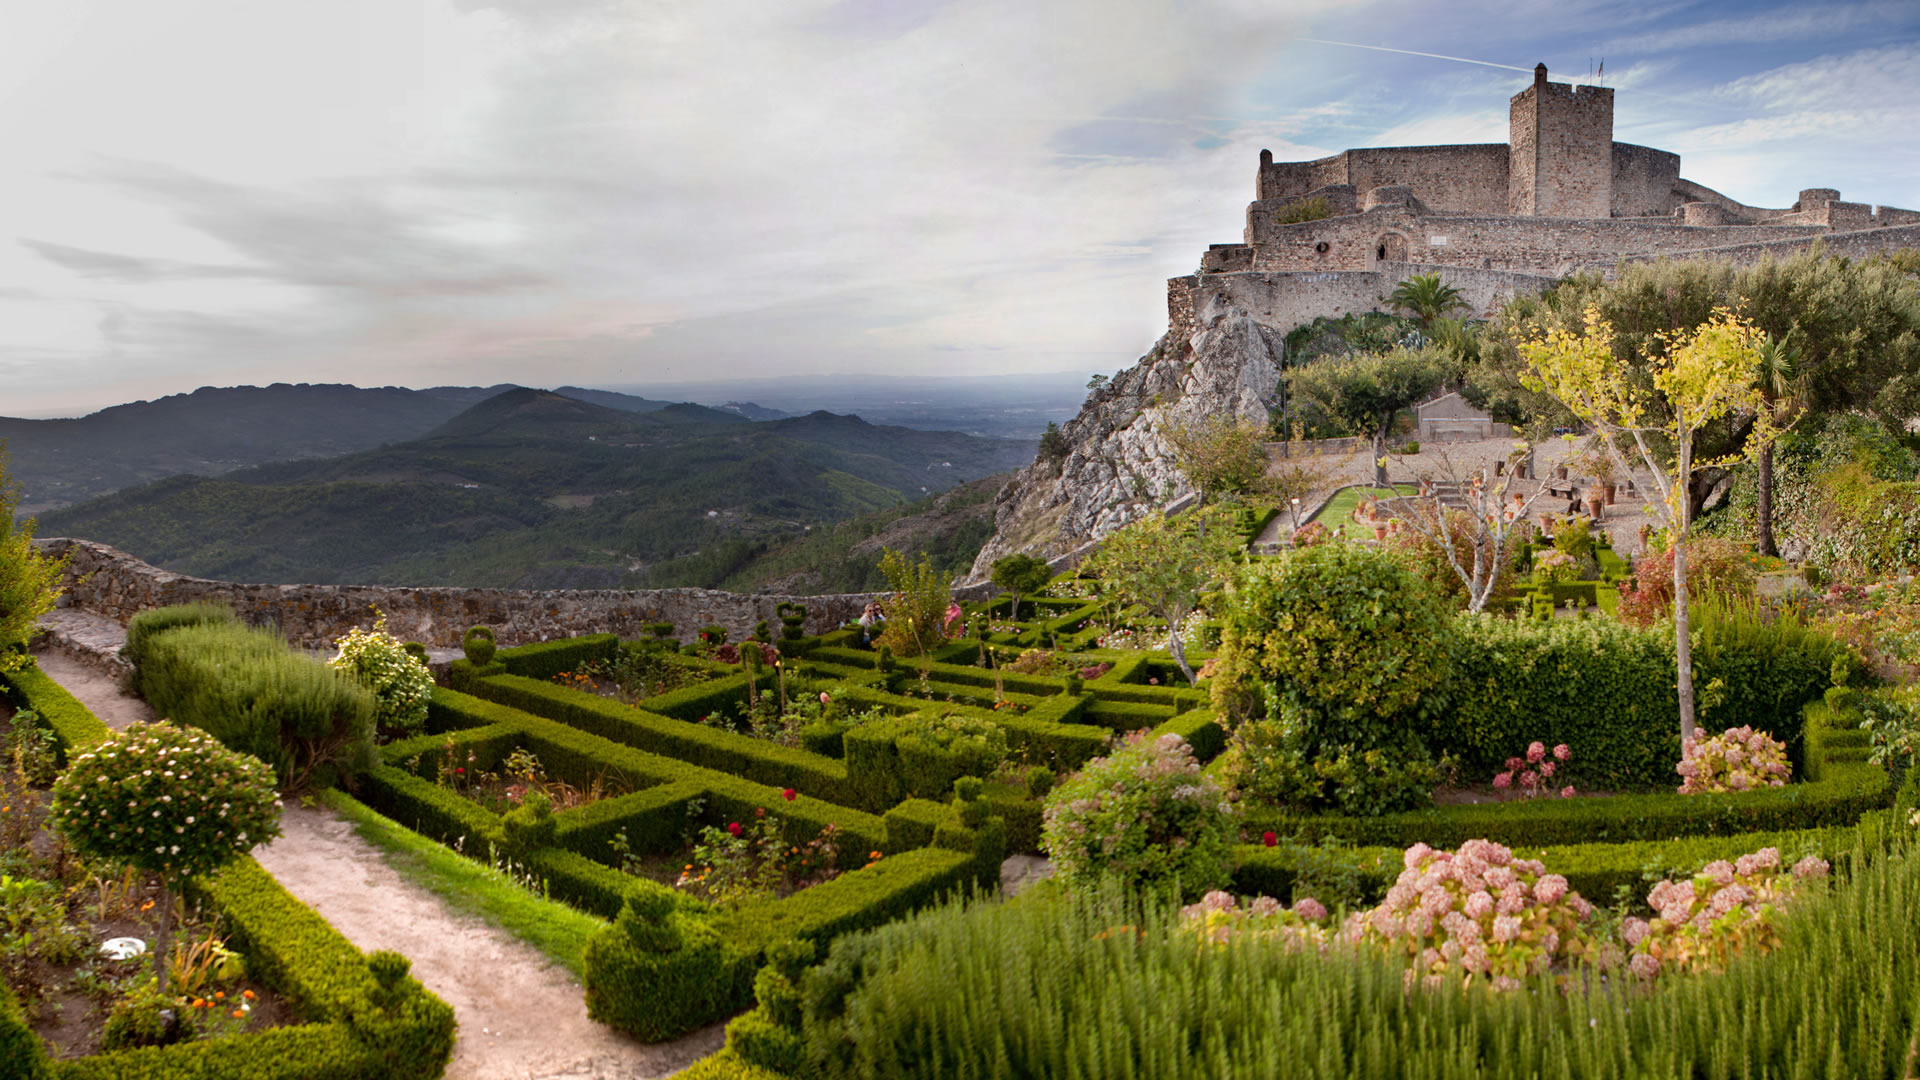 7 Castles And Monasteries Of Portugal That You Should Know